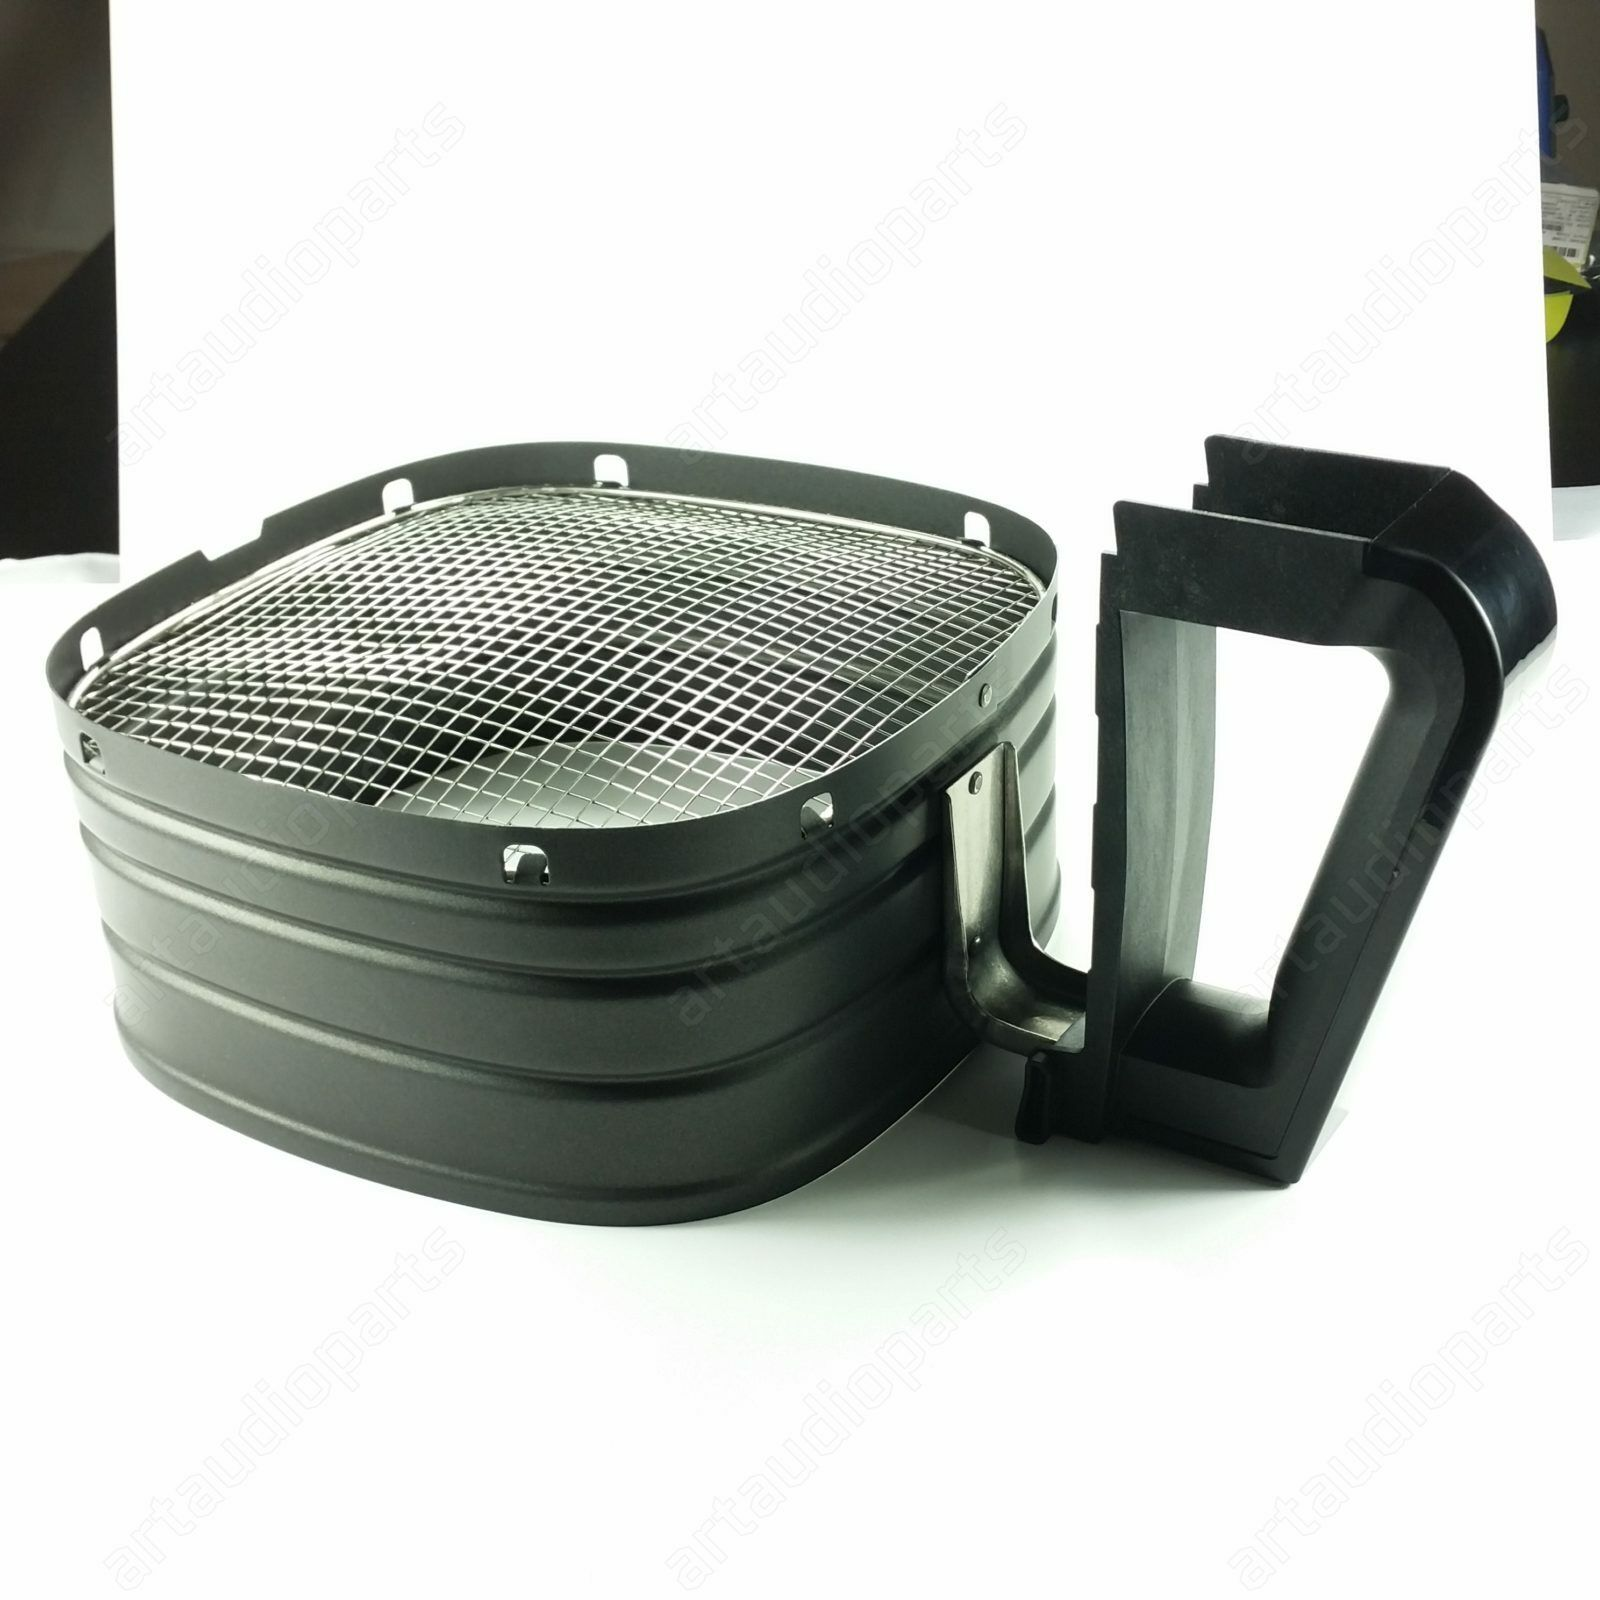 Healthy cook basket for Philips Avance Collection Walita Airfryer HD9240 HD9248